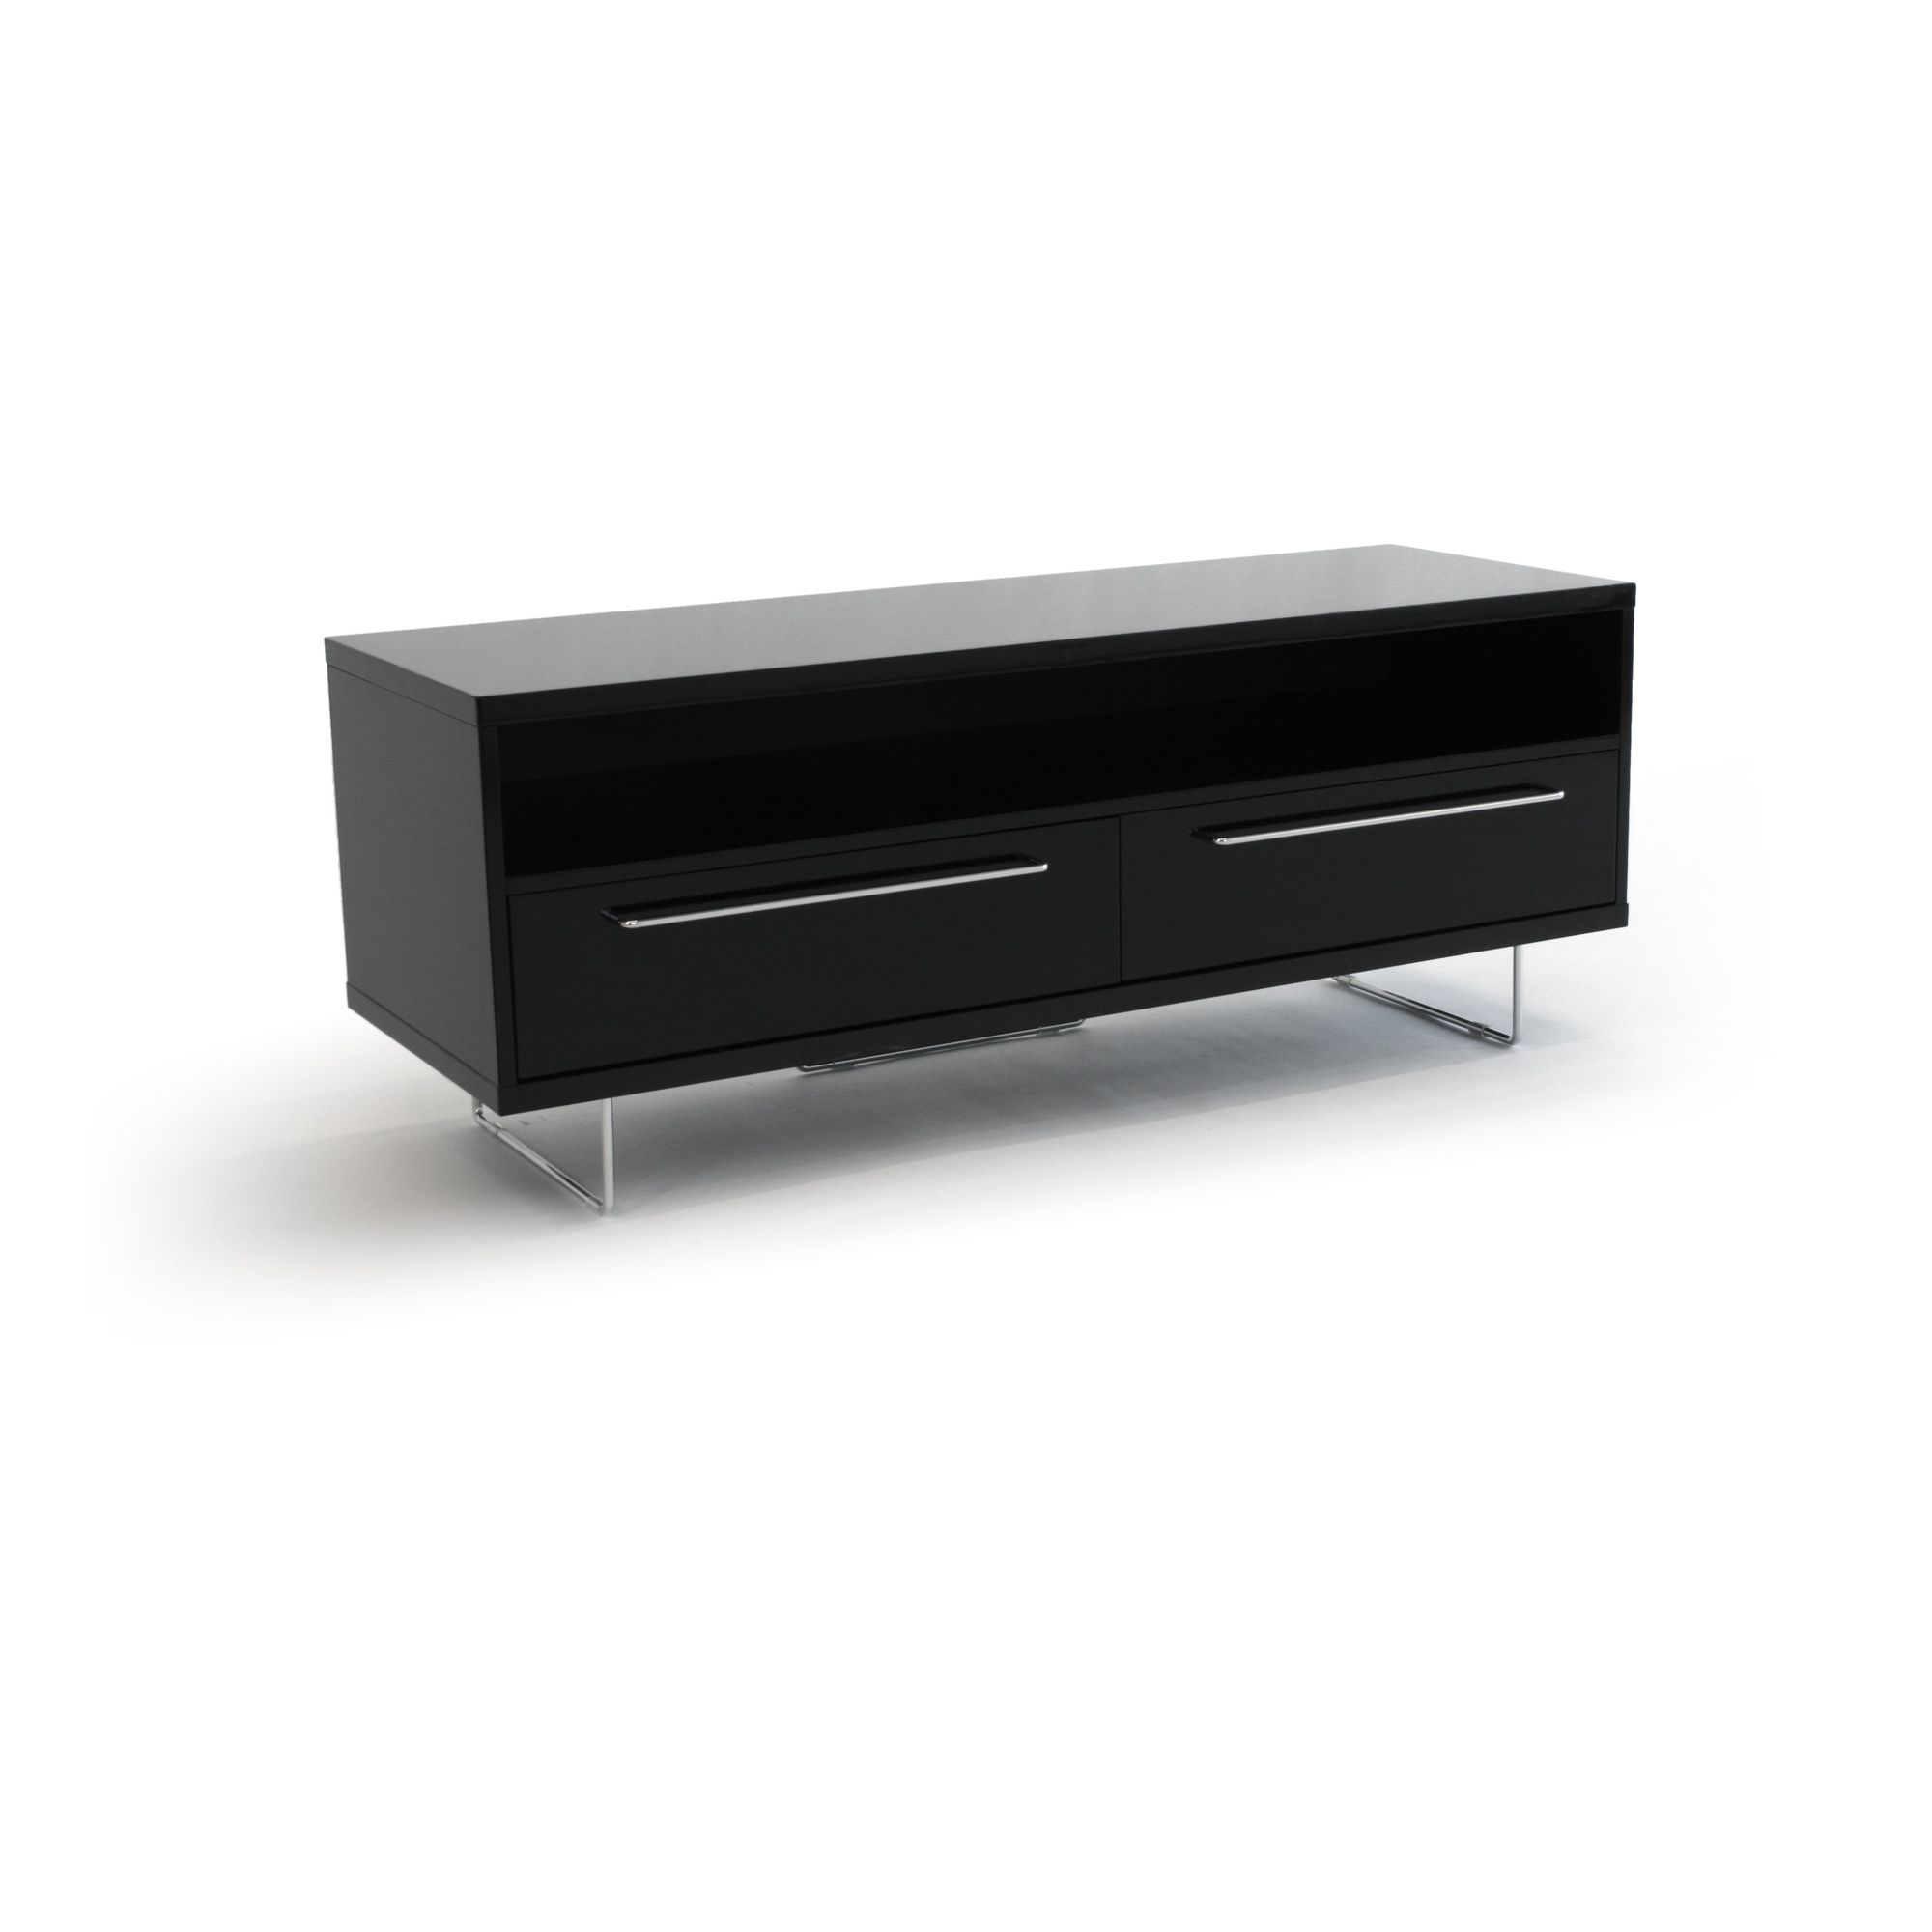 RGE Lago 2 Drawers Multi-Media TV Storage and Display Unit - Lacquer Black High Gloss at Tesco Direct